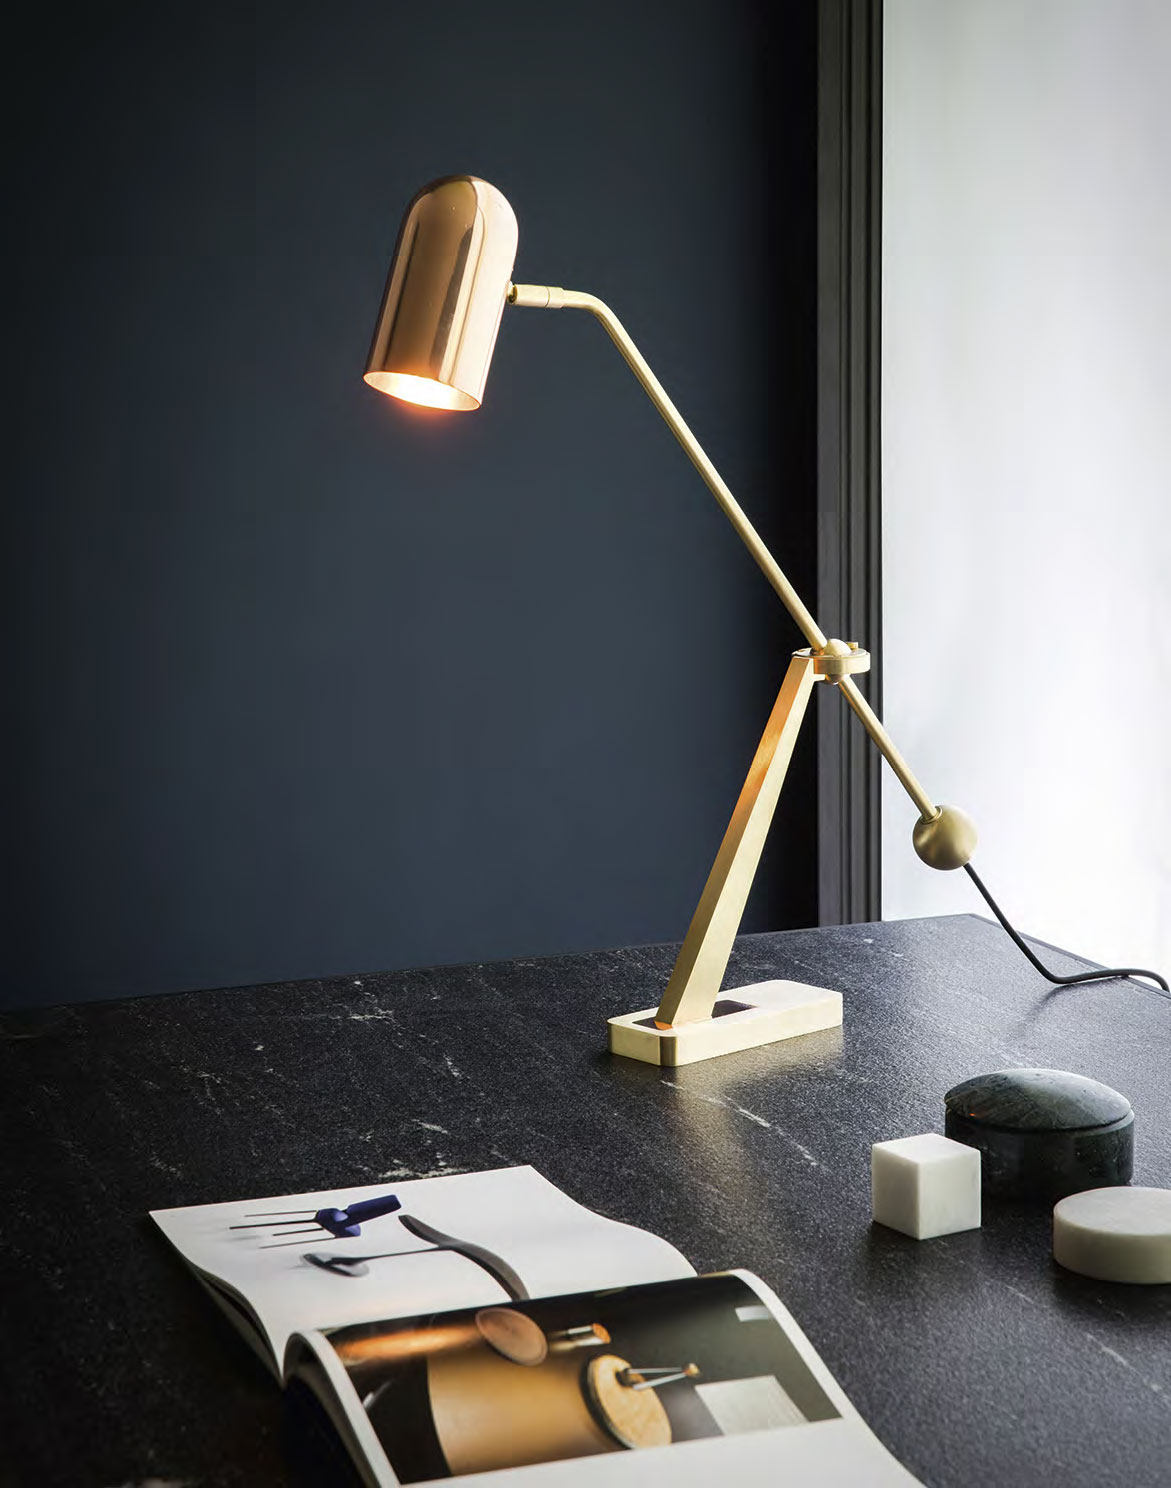 STASIS table lamp by Bert Frank.